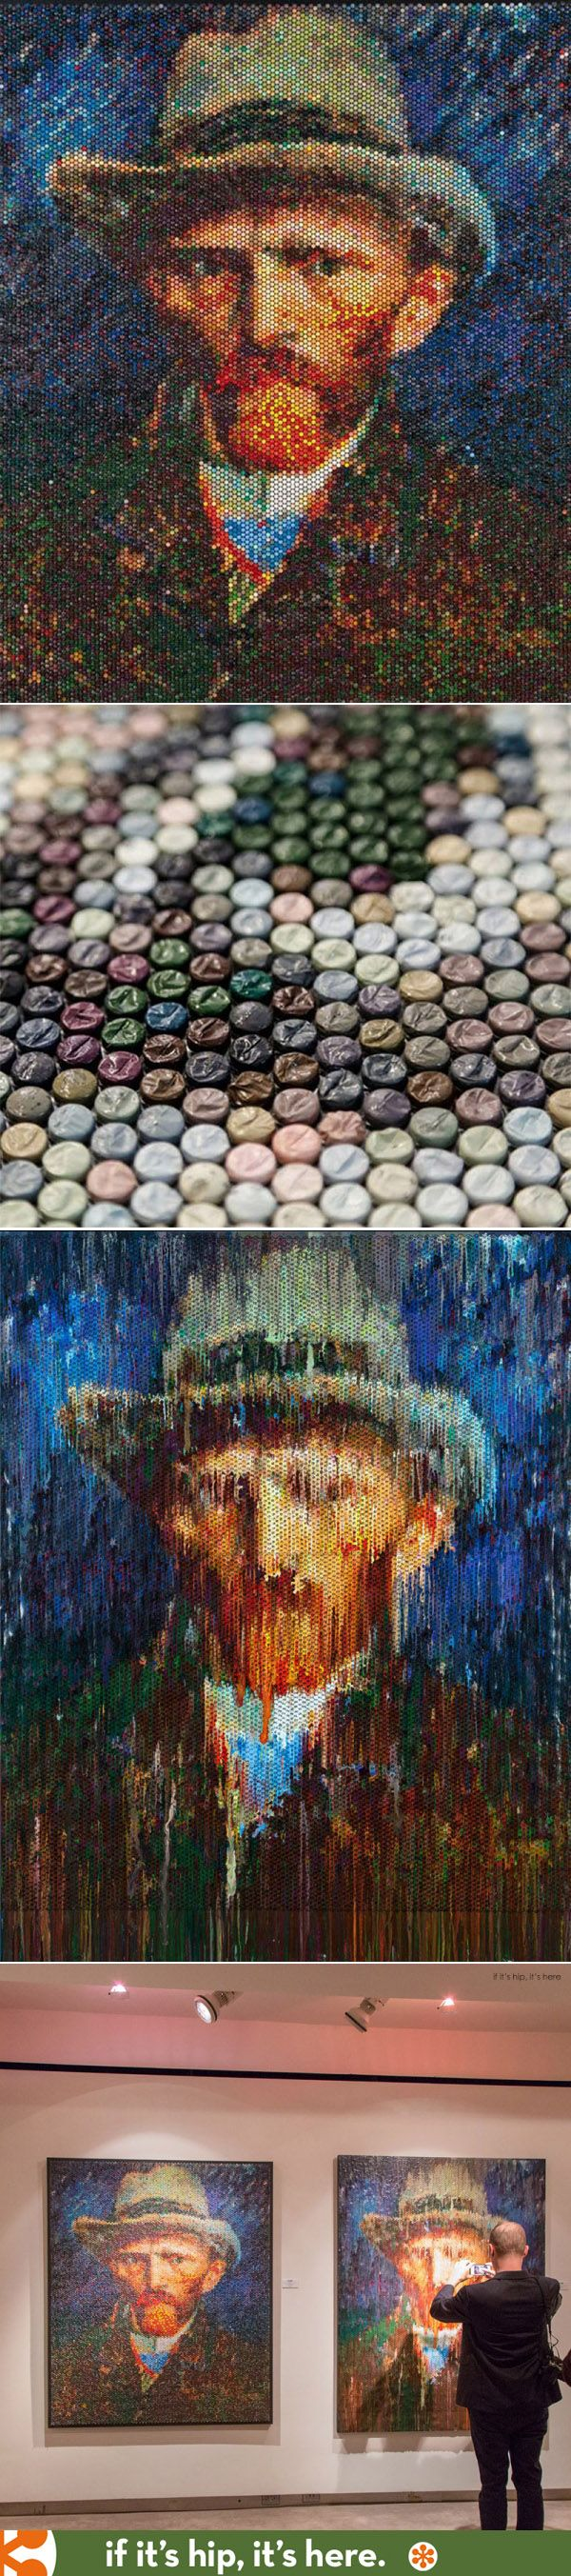 These are amazing.  Famous paintings recreated by injecting different colored paints into bubble wrap and companion pieces of the drippings from the plastic reveal an impression of the work.   http://www.ifitshipitshere.com/pop-go-masters-paint-injected-bubble-wrap-impressions/